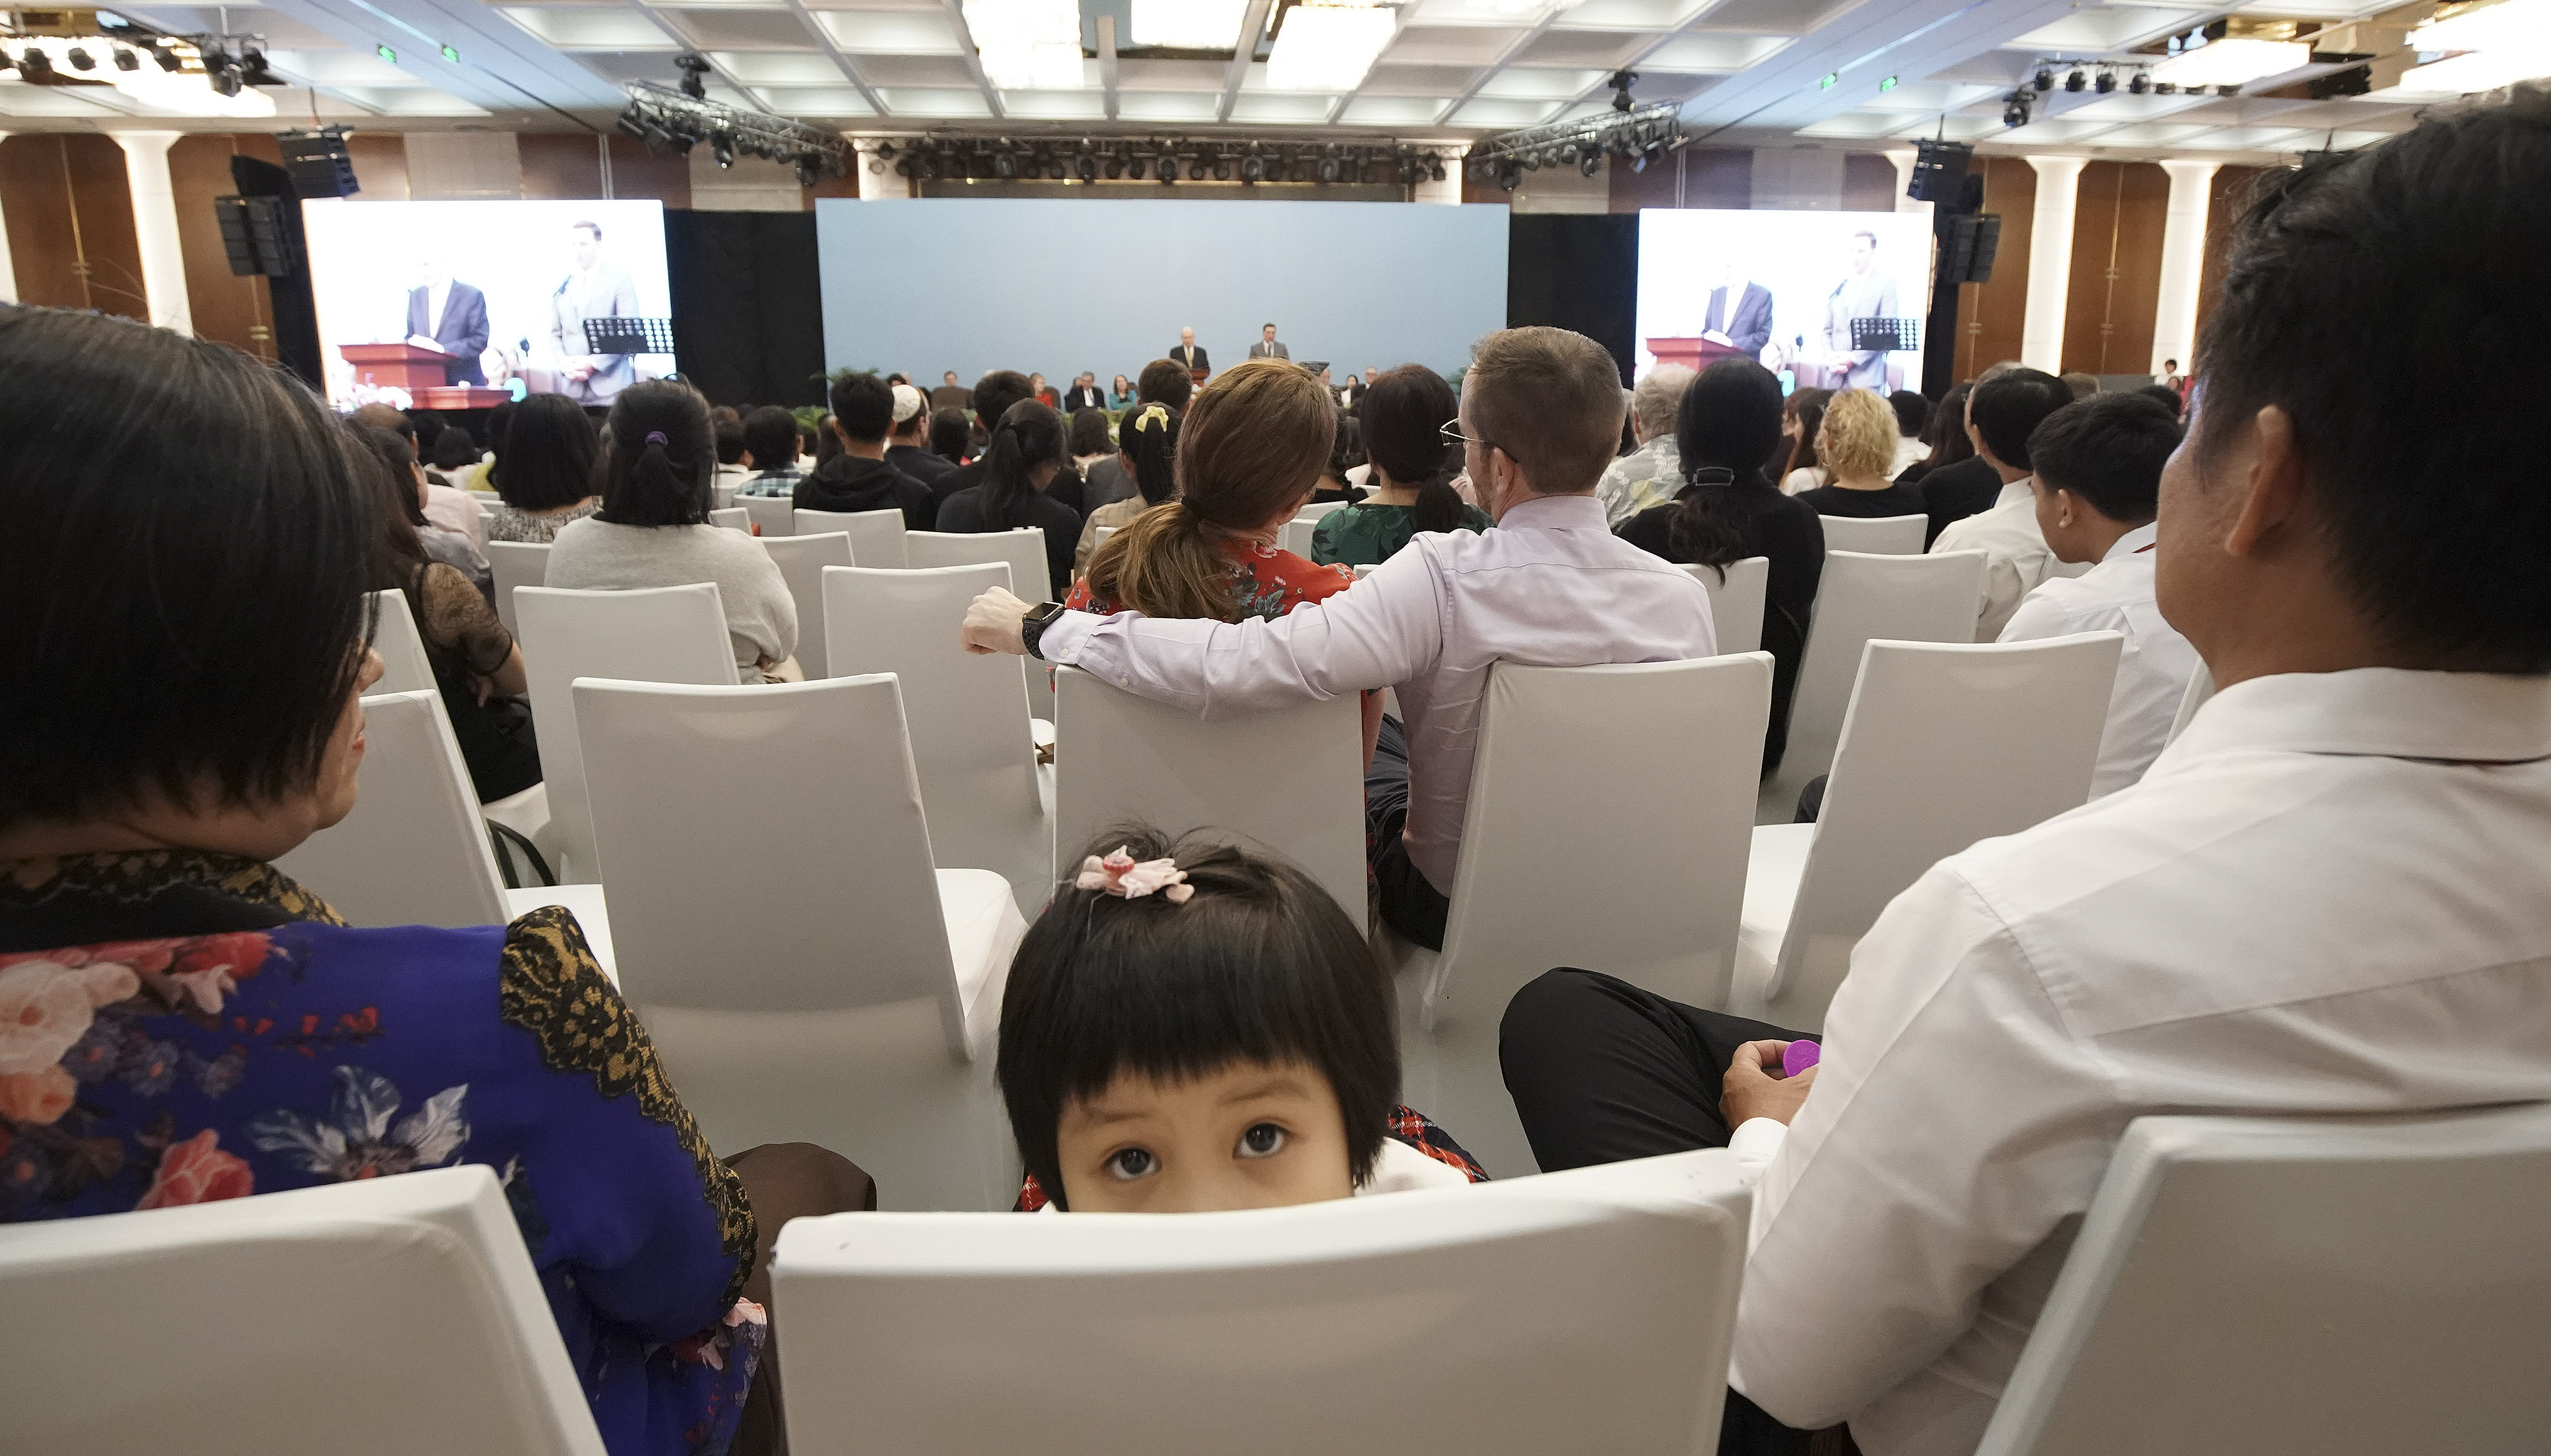 A young attendee looks around as President Russell M. Nelson of The Church of Jesus Christ of Latter-day Saints and his wife, Sister Wendy Nelson, speak during a devotional in Ho Chi Minh City, Vietnam, on Nov. 18, 2019.